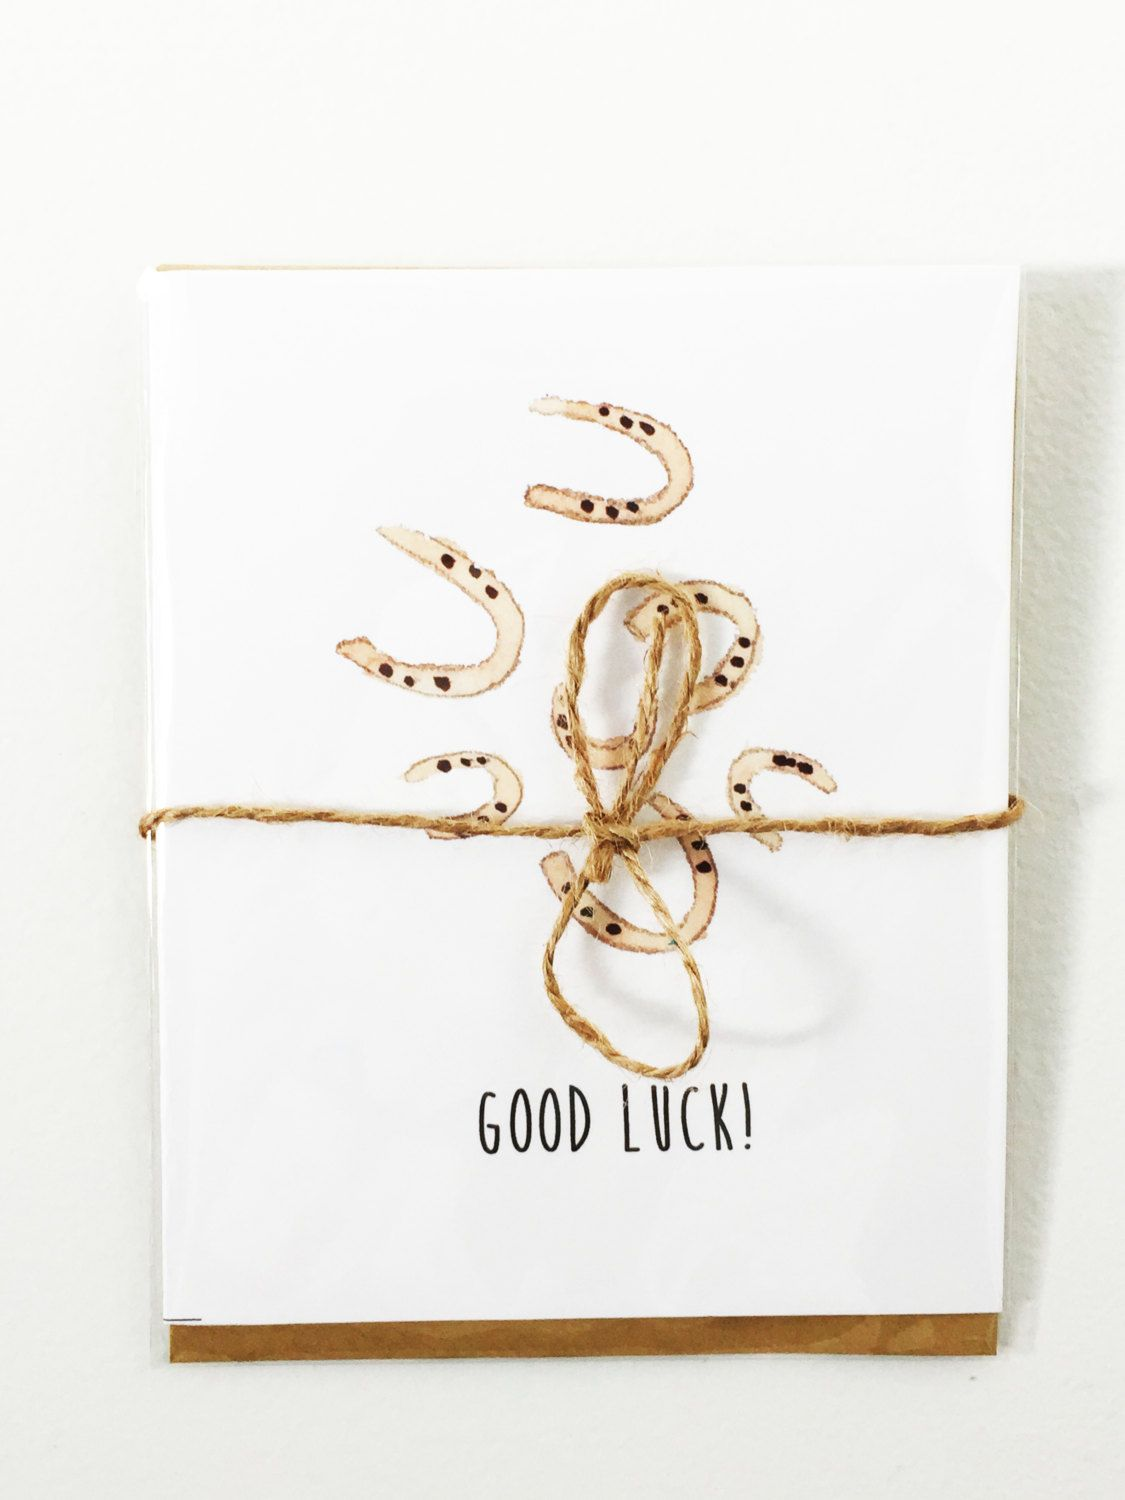 Good luck card greeting card best wishes card greeting card good luck card greeting card best wishes card greeting card wishbone watercolor wishbone card best wishes kristyandbryce Image collections